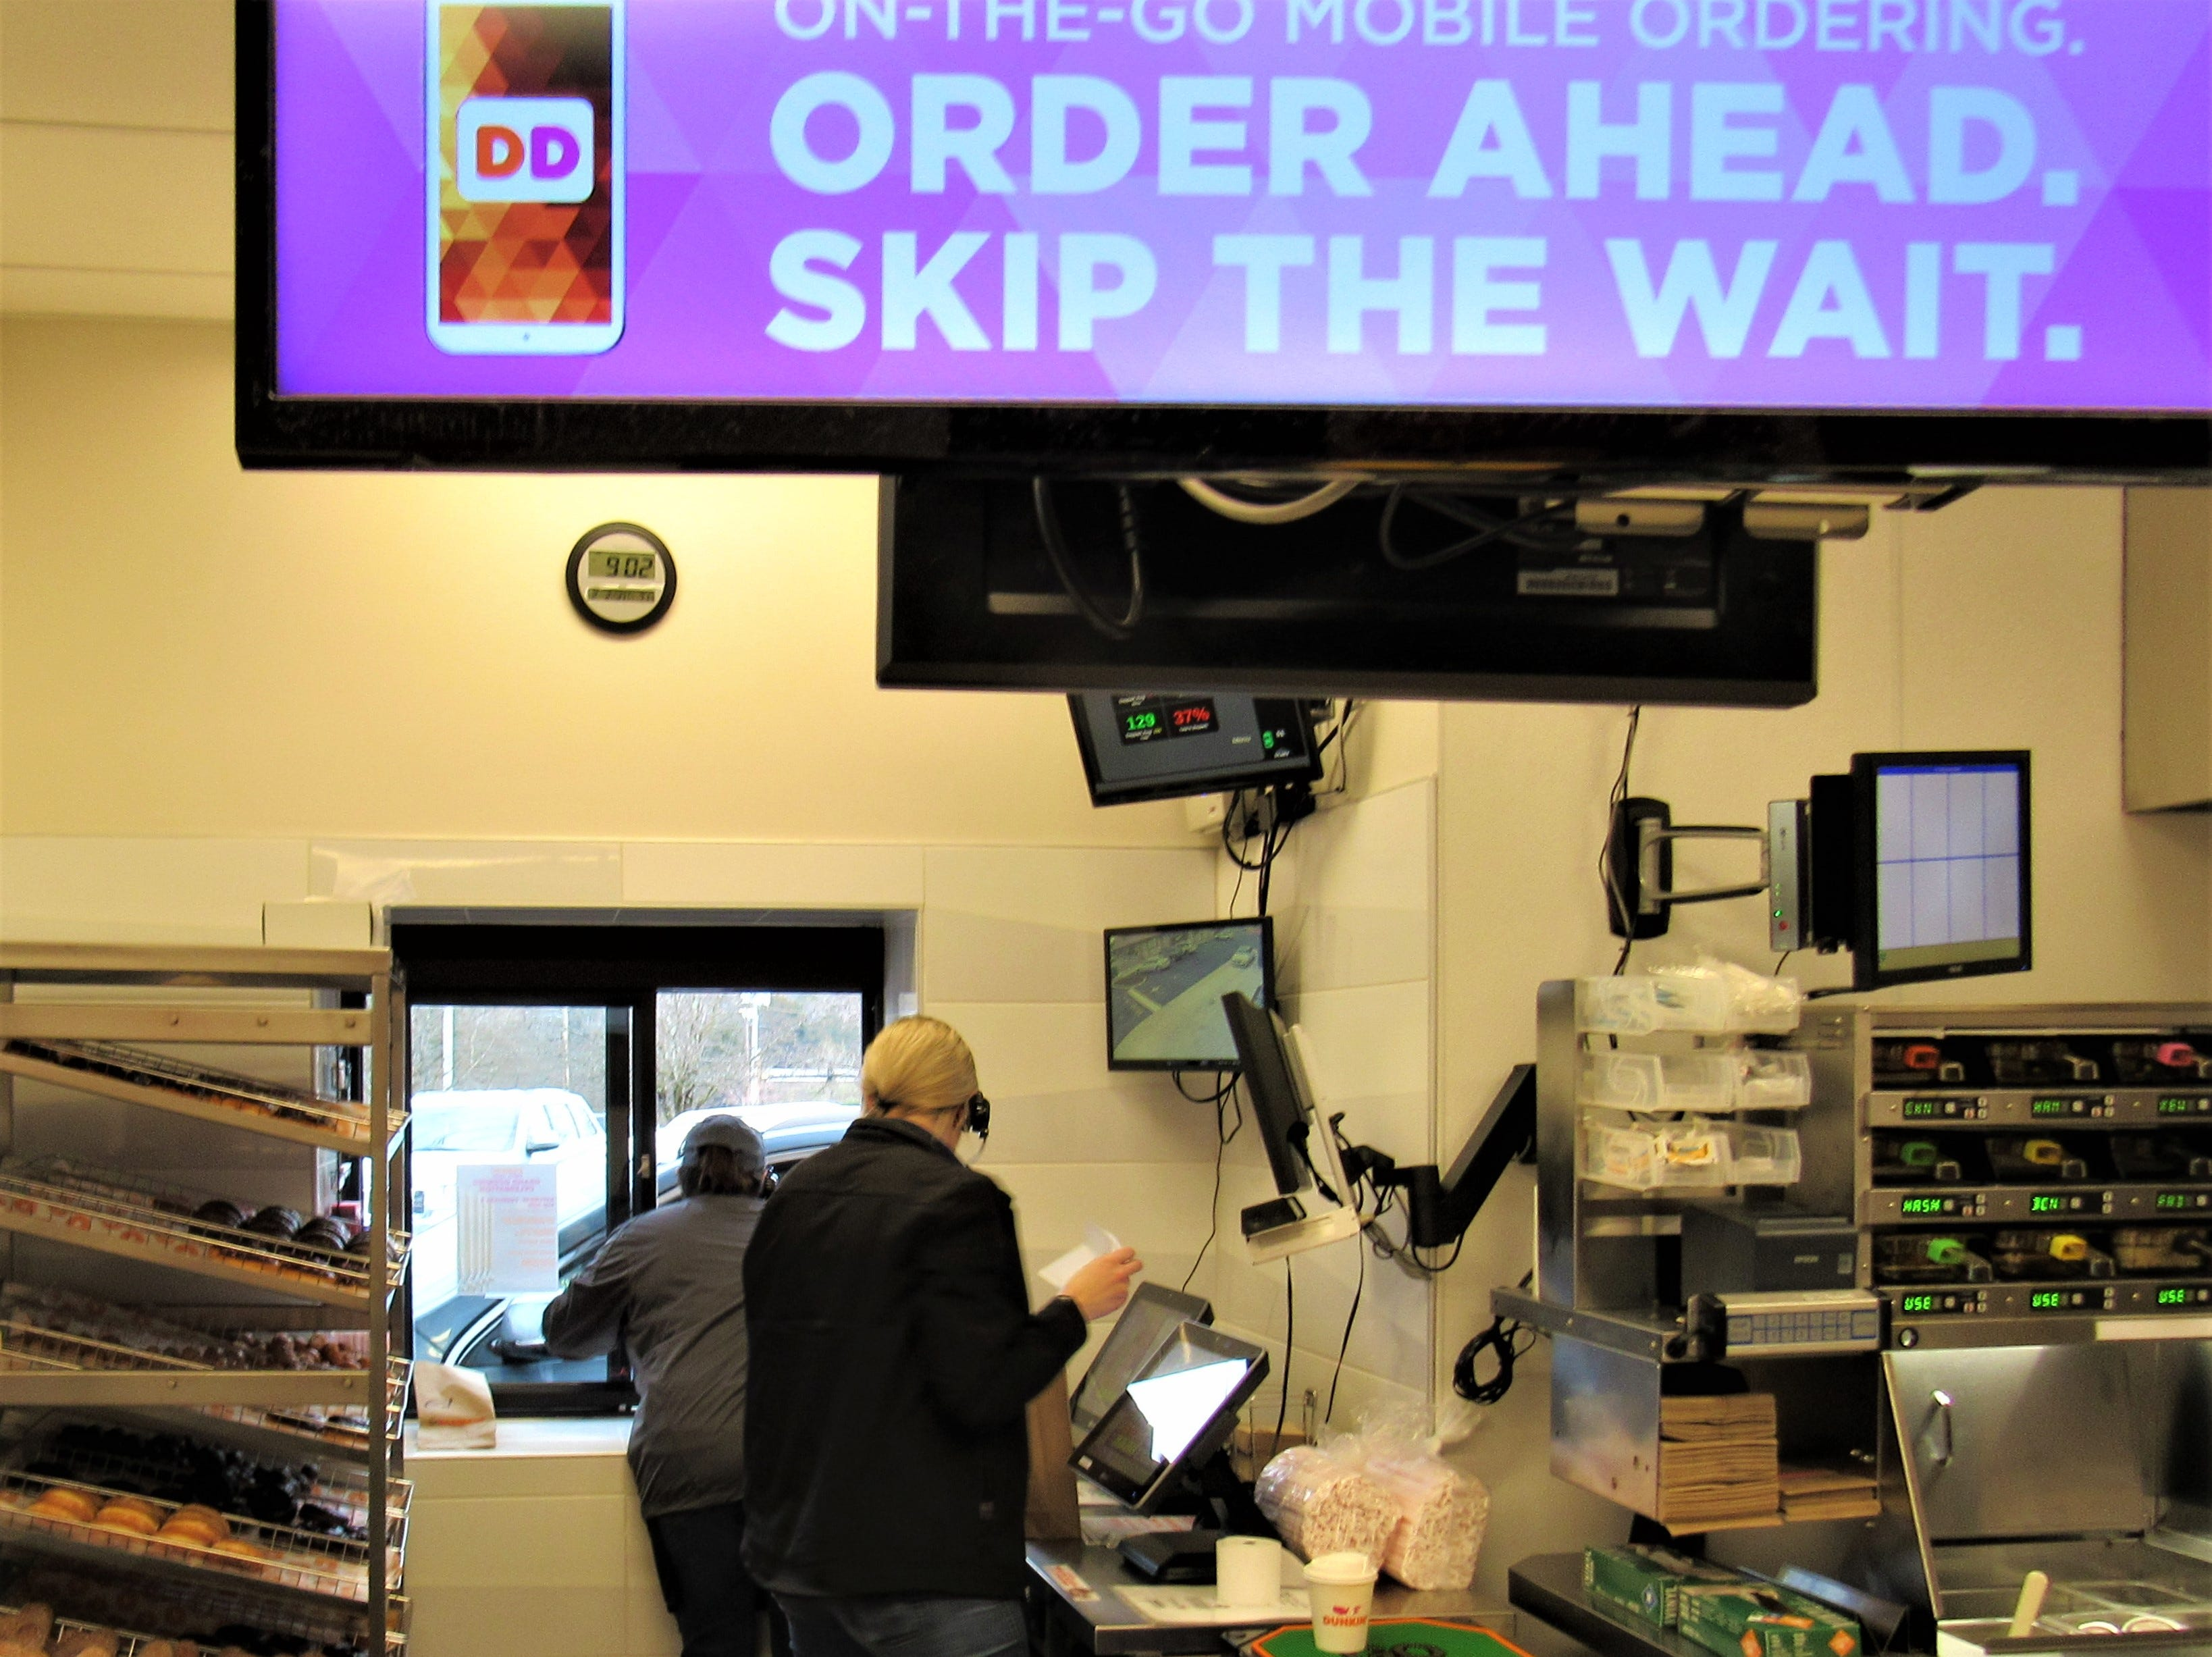 Now with a drive-thru, customers can download an app to order and pre-pay online, cutting time for pick-up.  There is also a walk-up window for customers to grab-and-go.